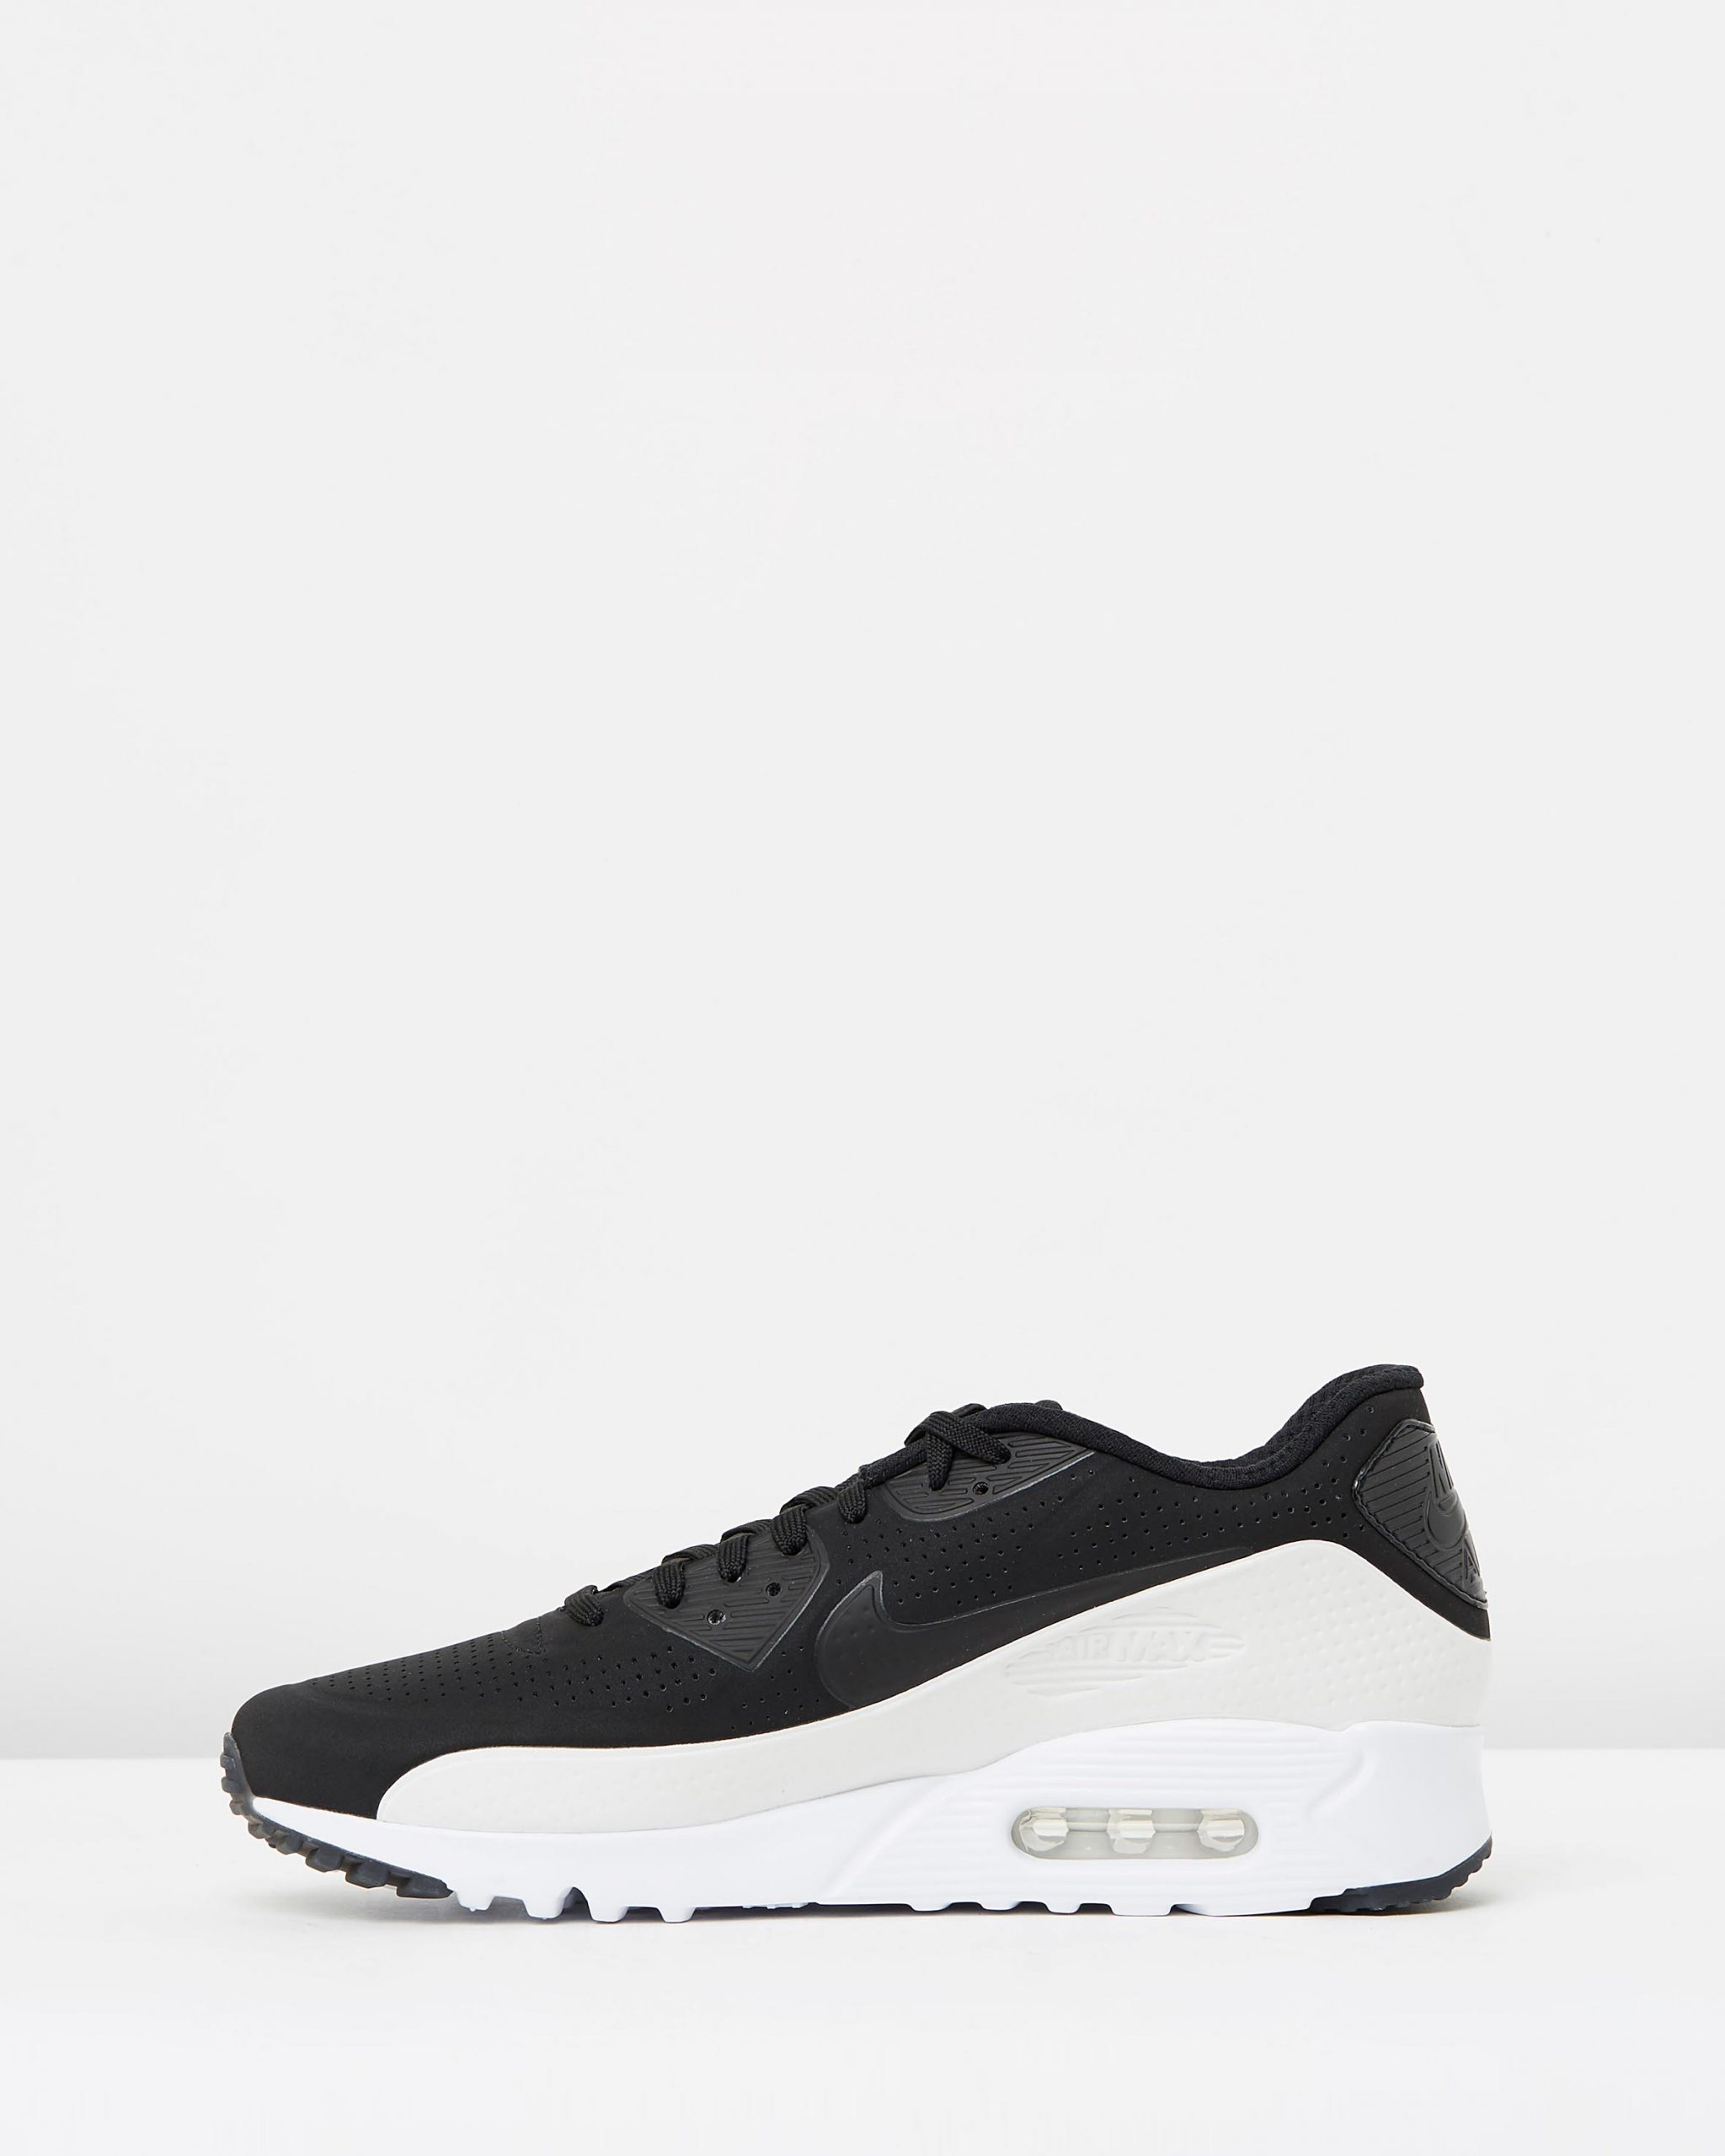 Nike Air Max 90 Ultra Moire Black White 95gallery Com